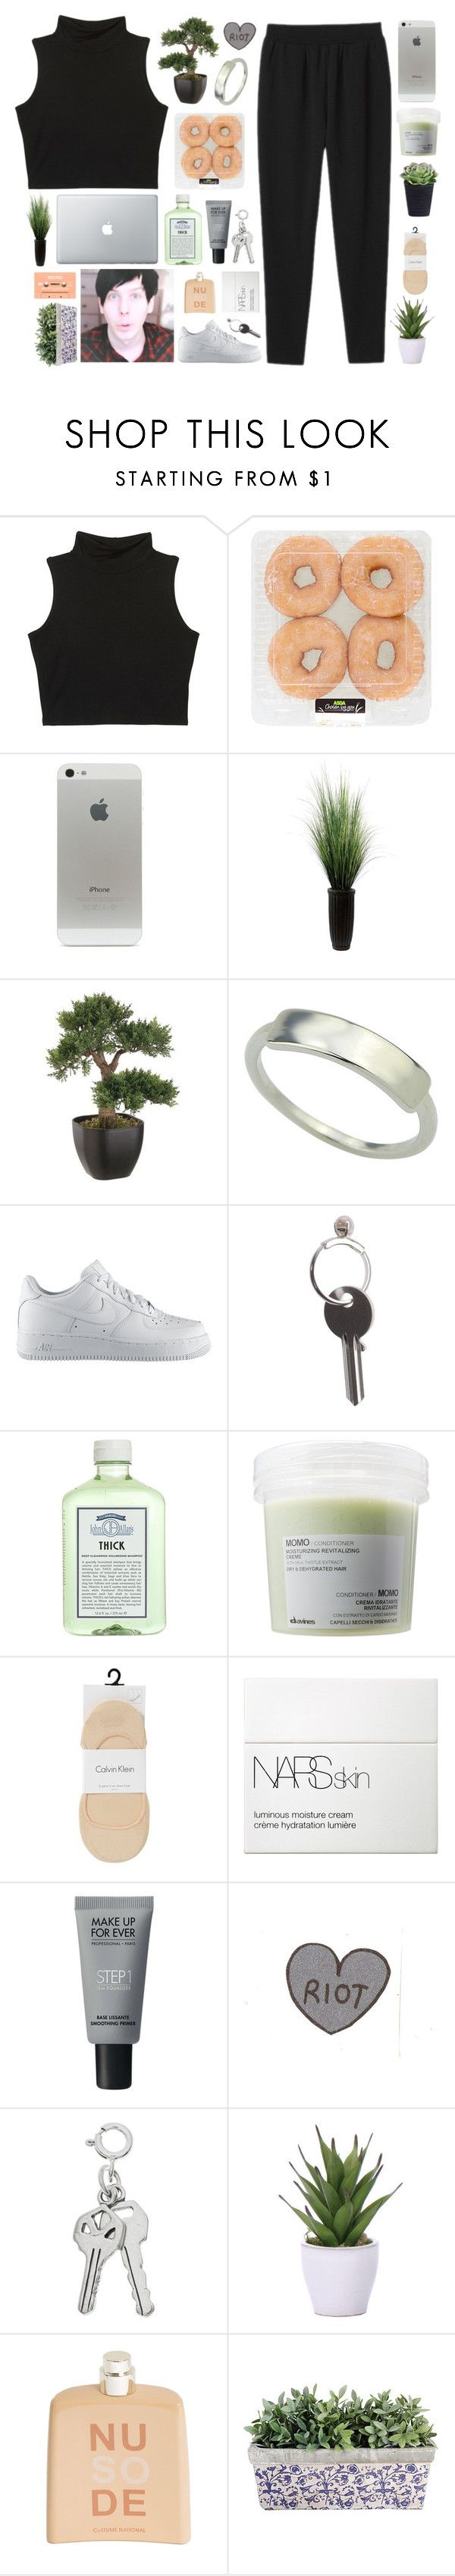 """☾HAPPY BiRTHDAY, PHiL"" by siamesecat-1 ❤ liked on Polyvore featuring Monki, Laura Ashley, NIKE, Maison Margiela, John Allan's, Davines, Calvin Klein, NARS Cosmetics, MAKE UP FOR EVER and Lux-Art Silks"